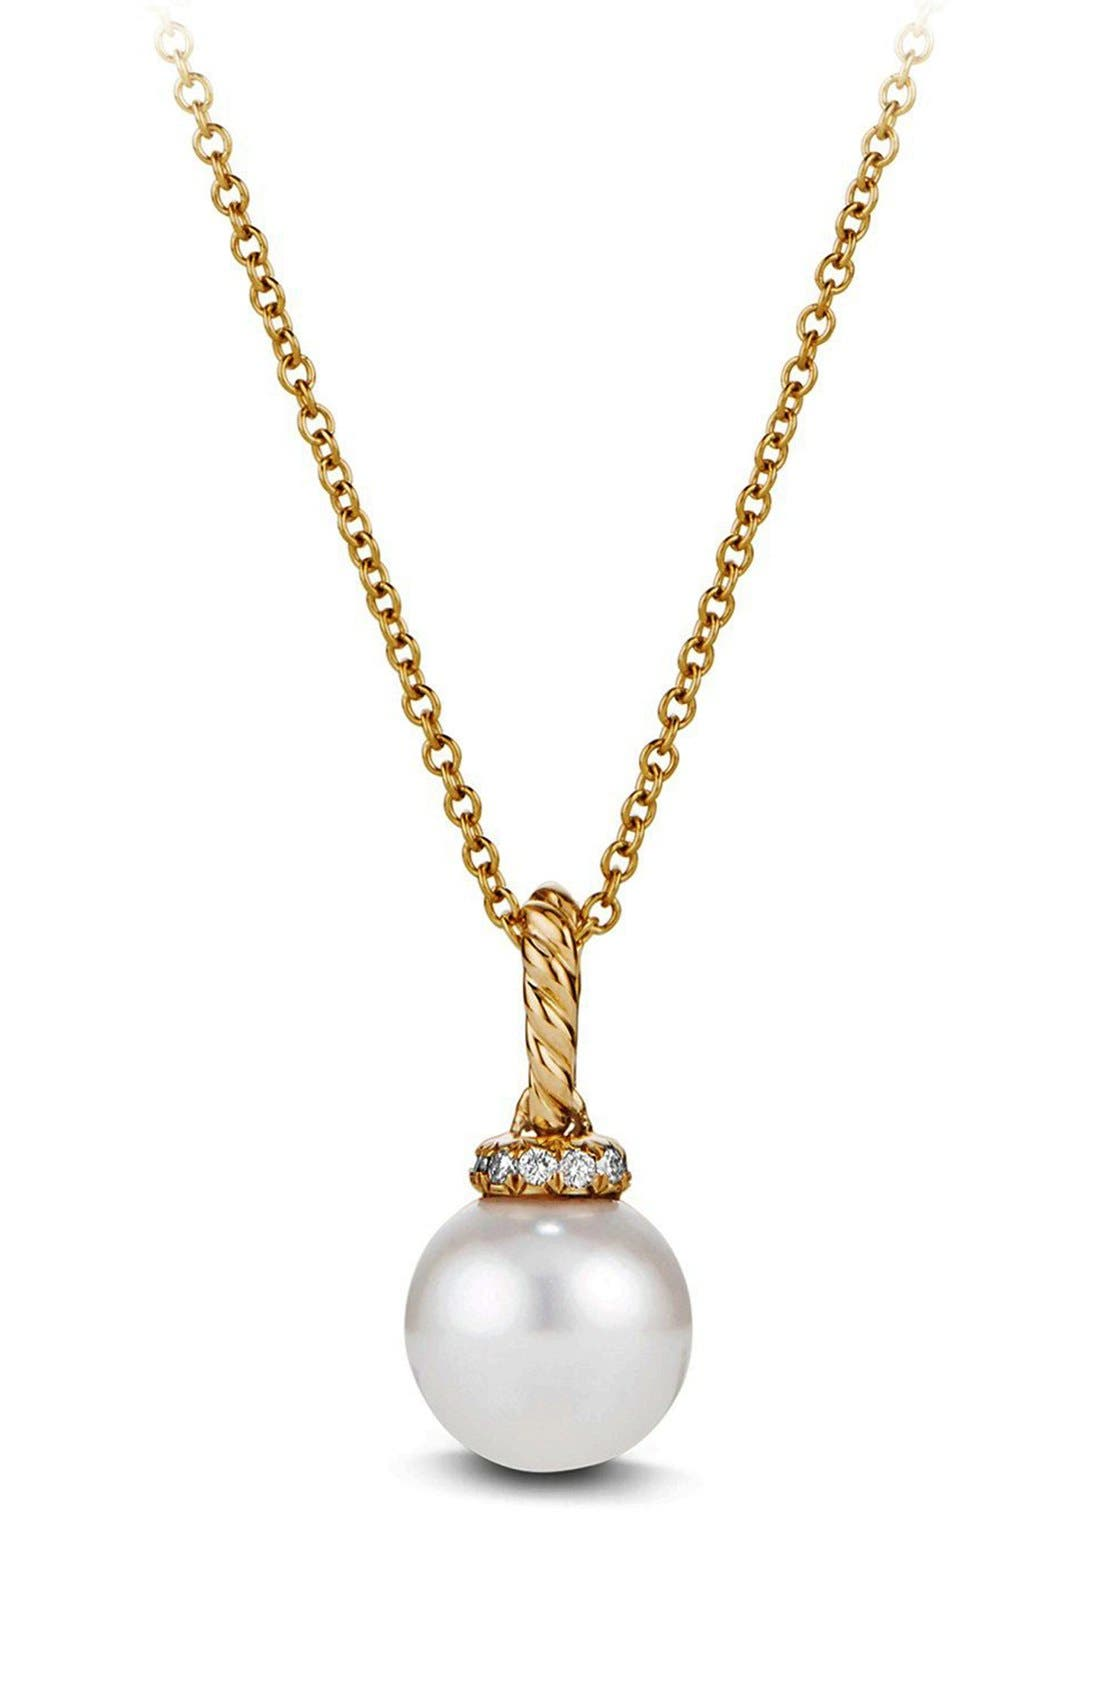 David Yurman 'Solari' Pendant Necklace with Pearls and Diamonds in 18K Gold